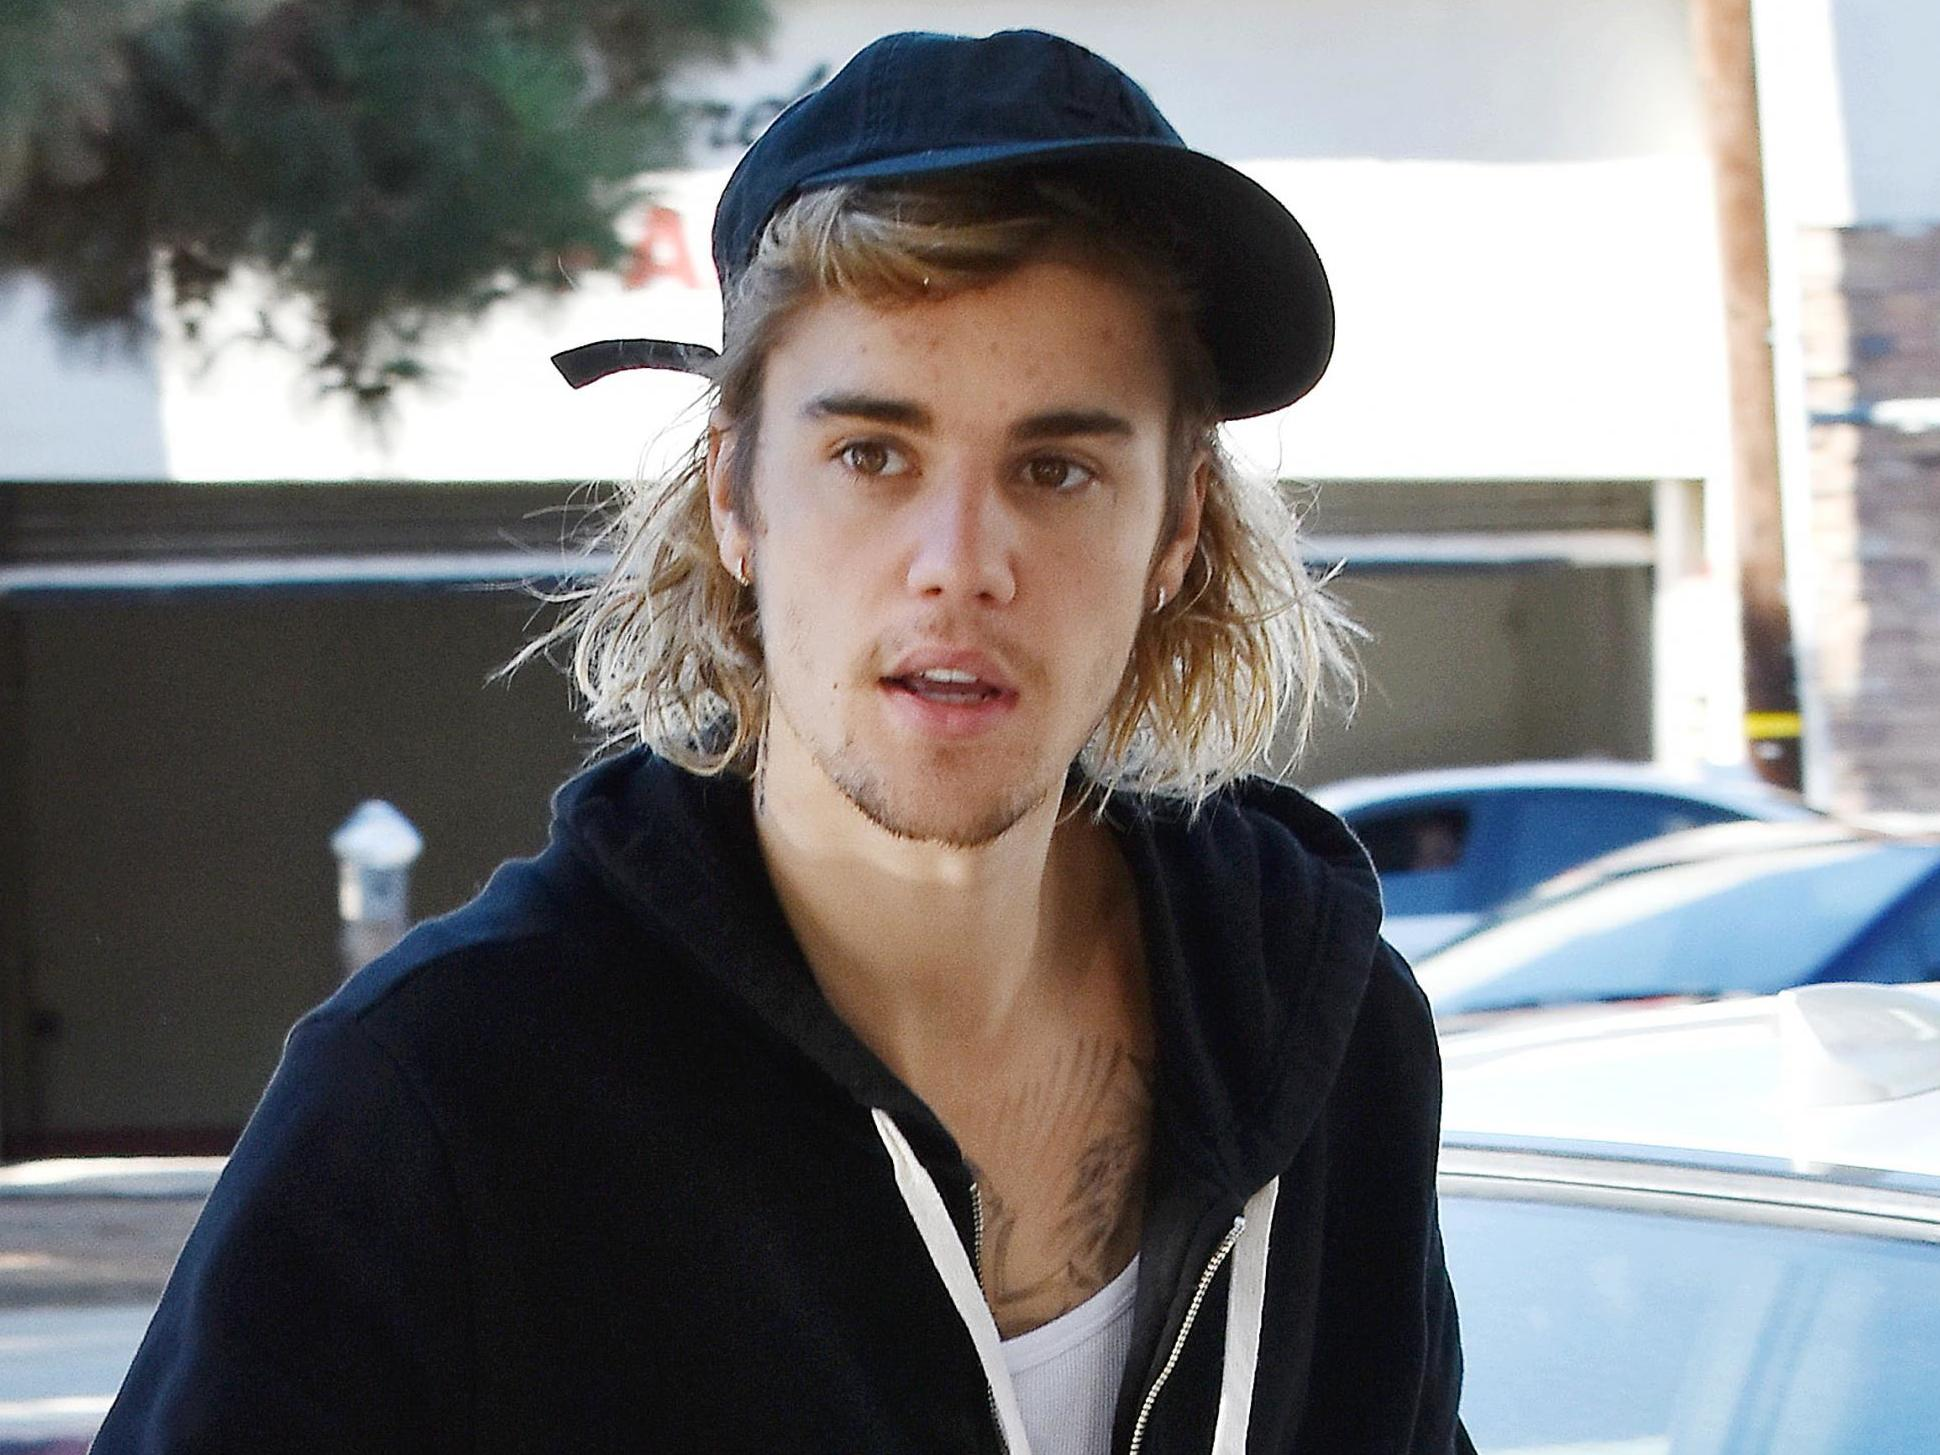 Justin Bieber - latest news, breaking stories and comment